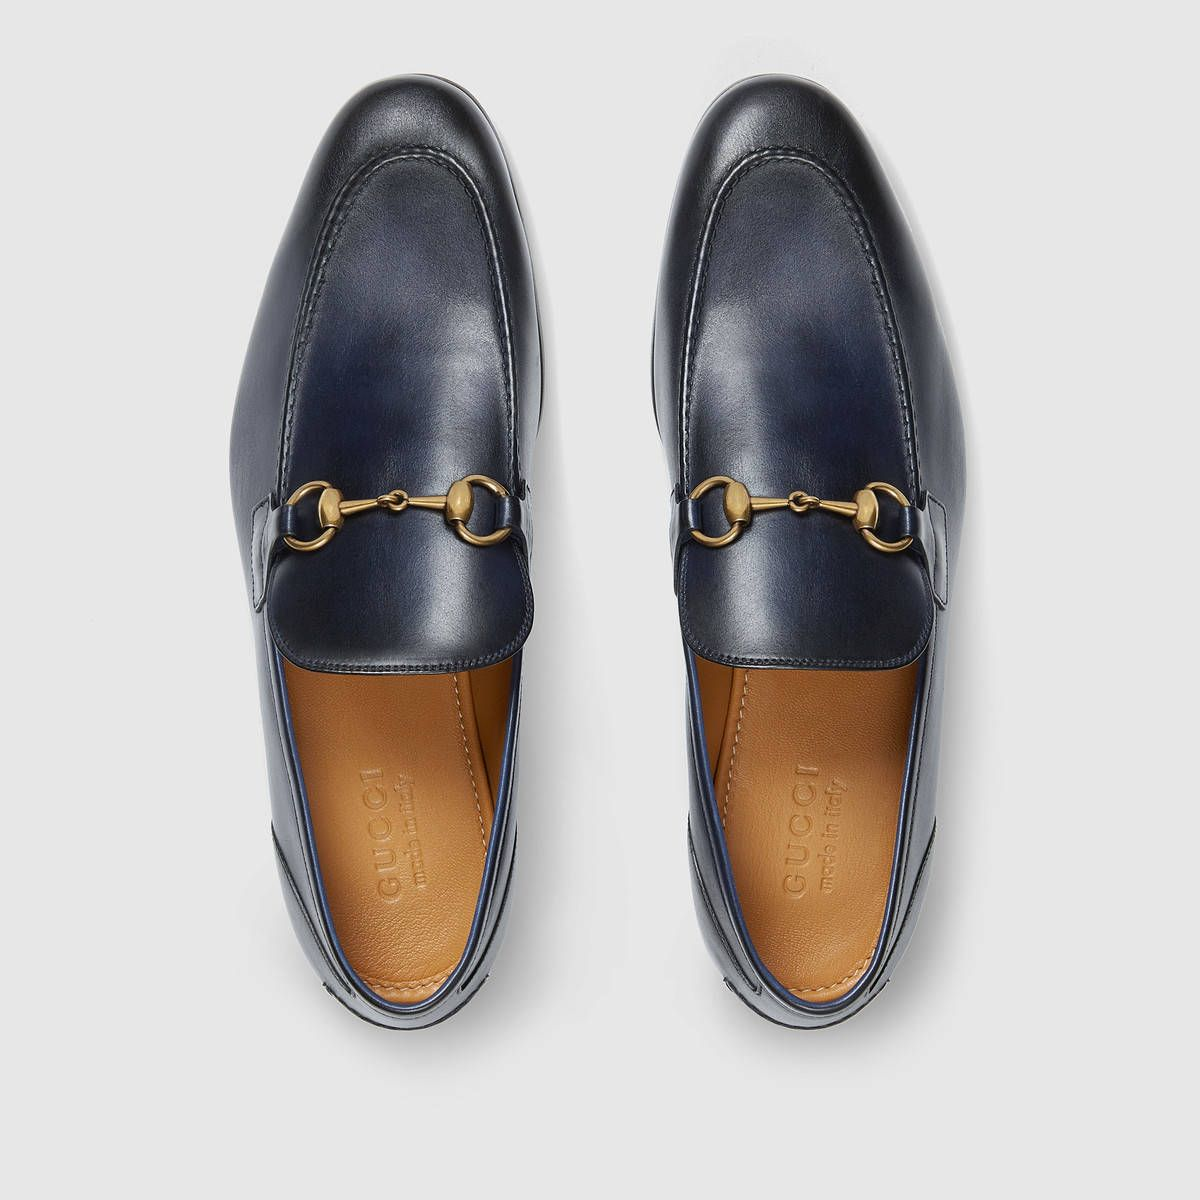 db275a22a81 Gucci Jordan leather loafer in Navy (Nordstrom s in Nashville also has  these)